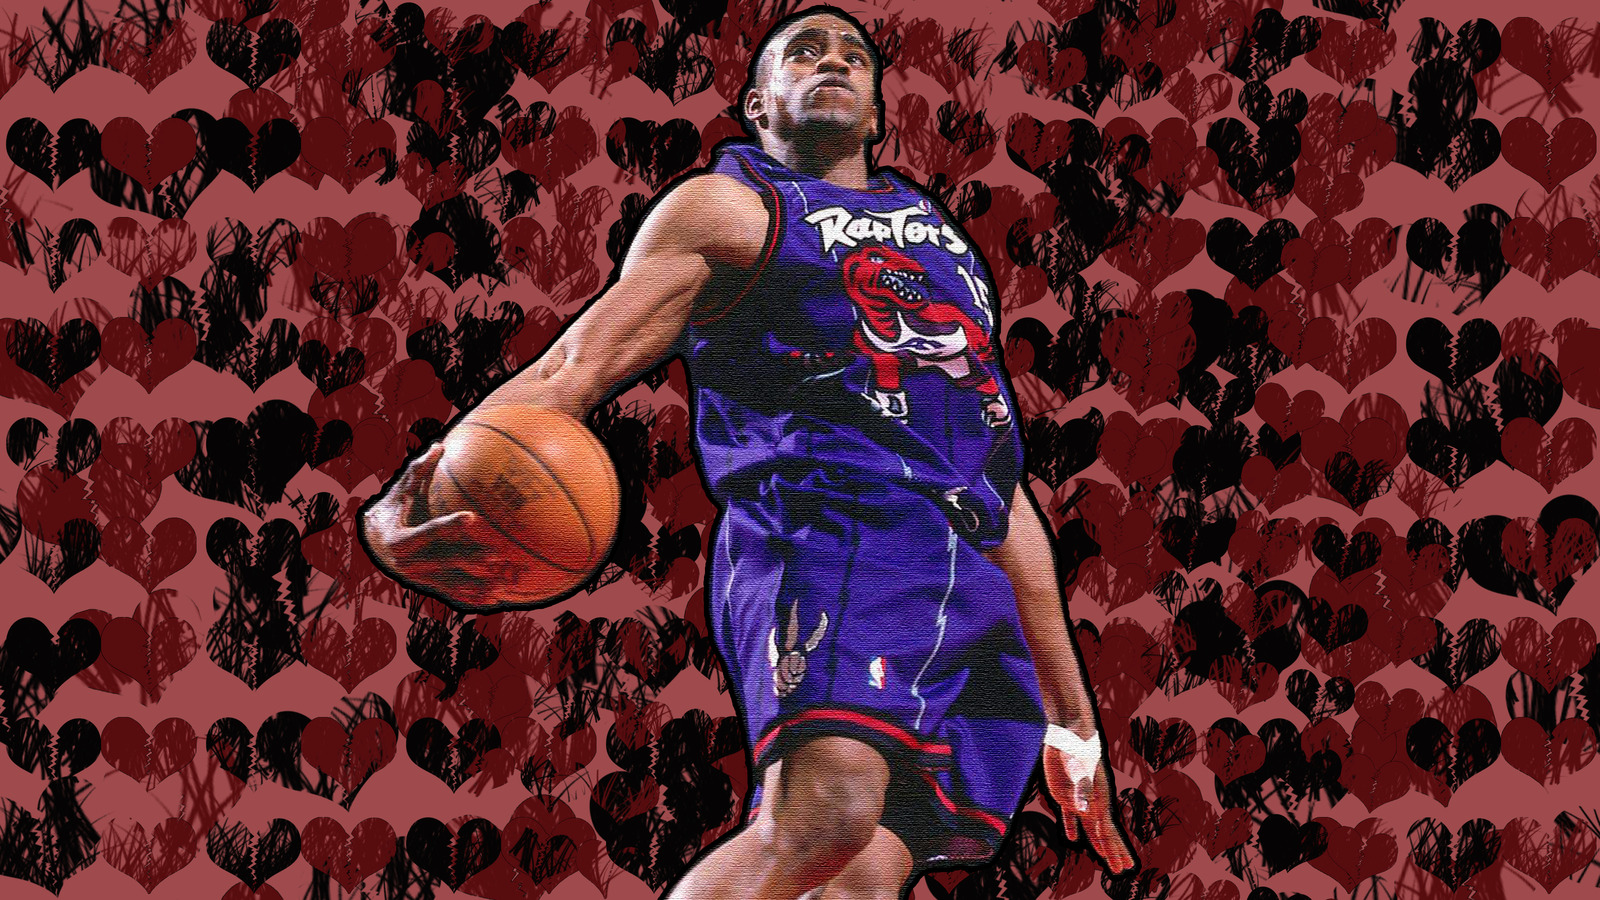 A promise left unfilled Vince Carter and the Raptors